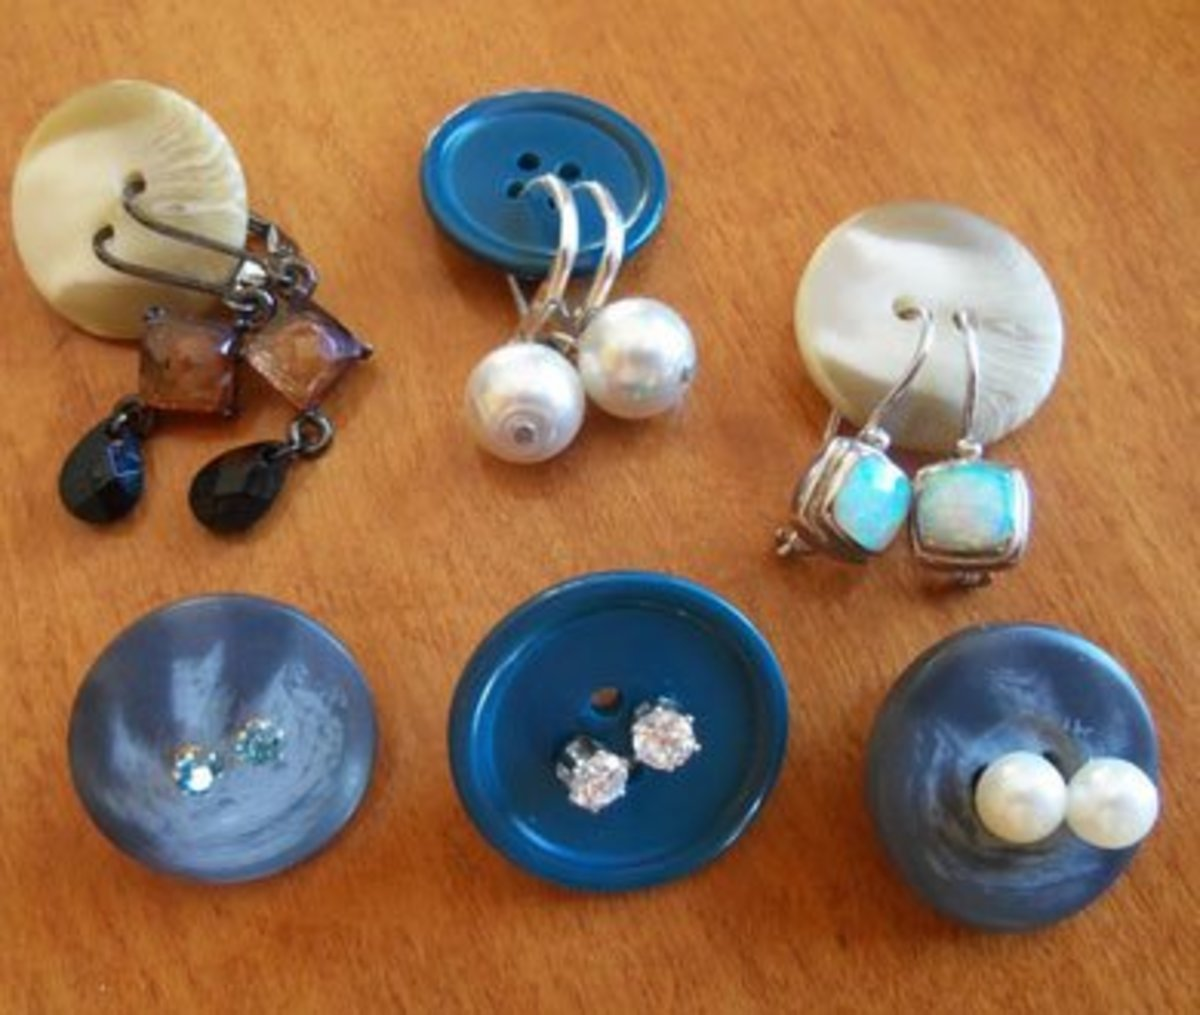 Button Organisers for Earrings | Easy Organization Ideas for the Home